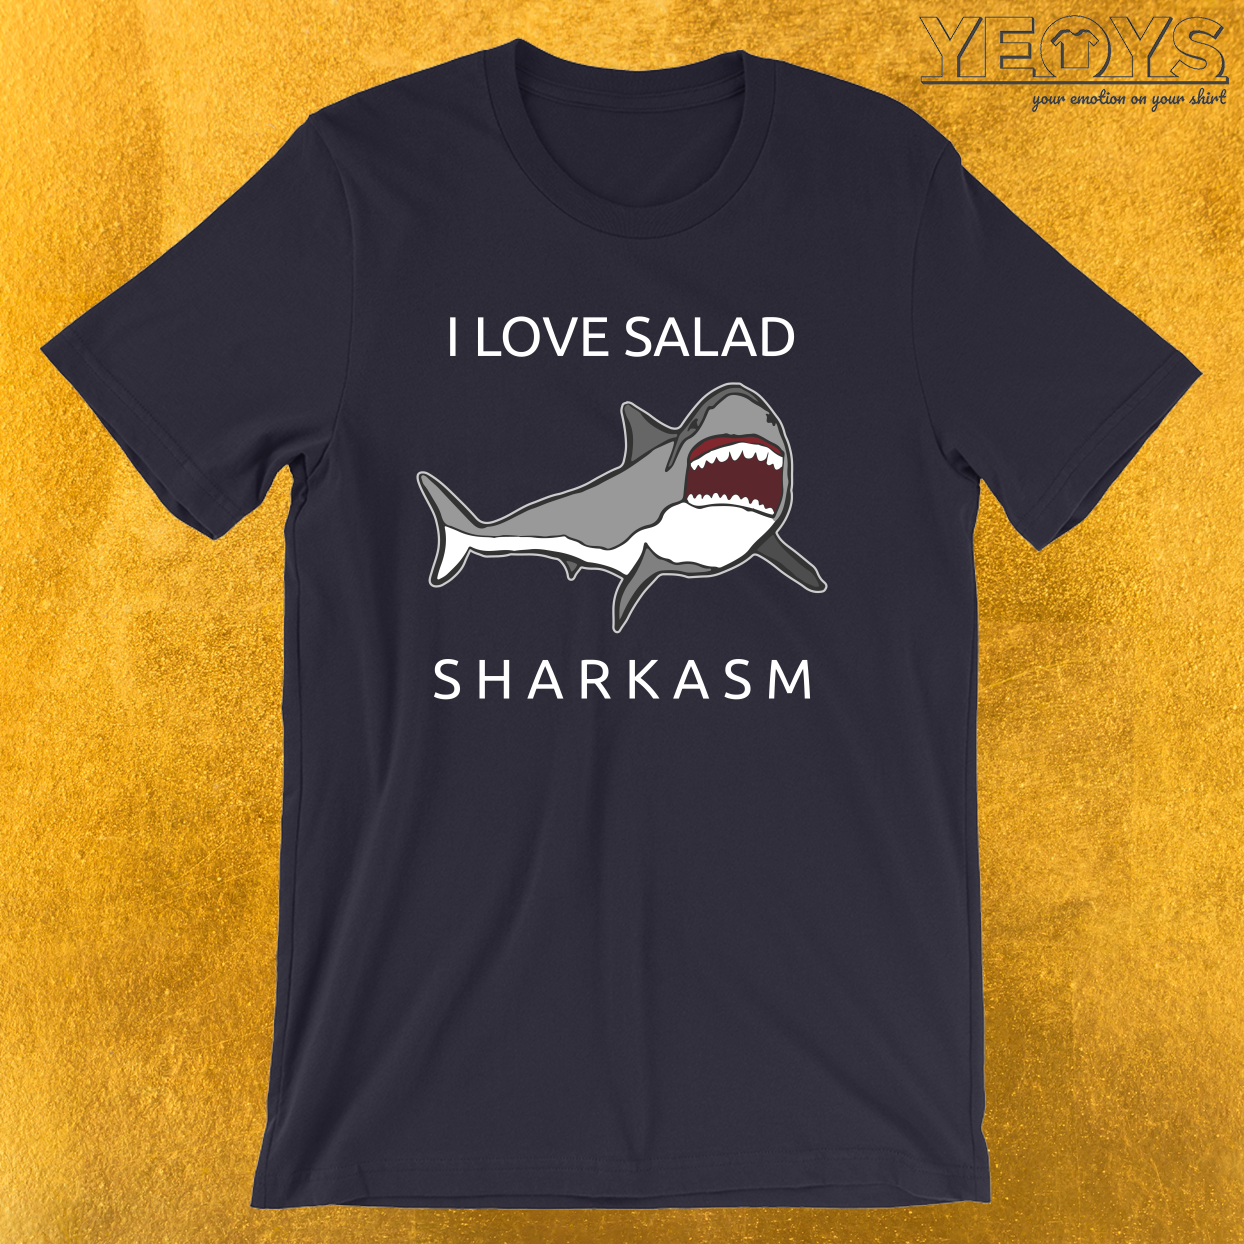 Funny Shark Pun – I Love Salad Sharkasm Tee